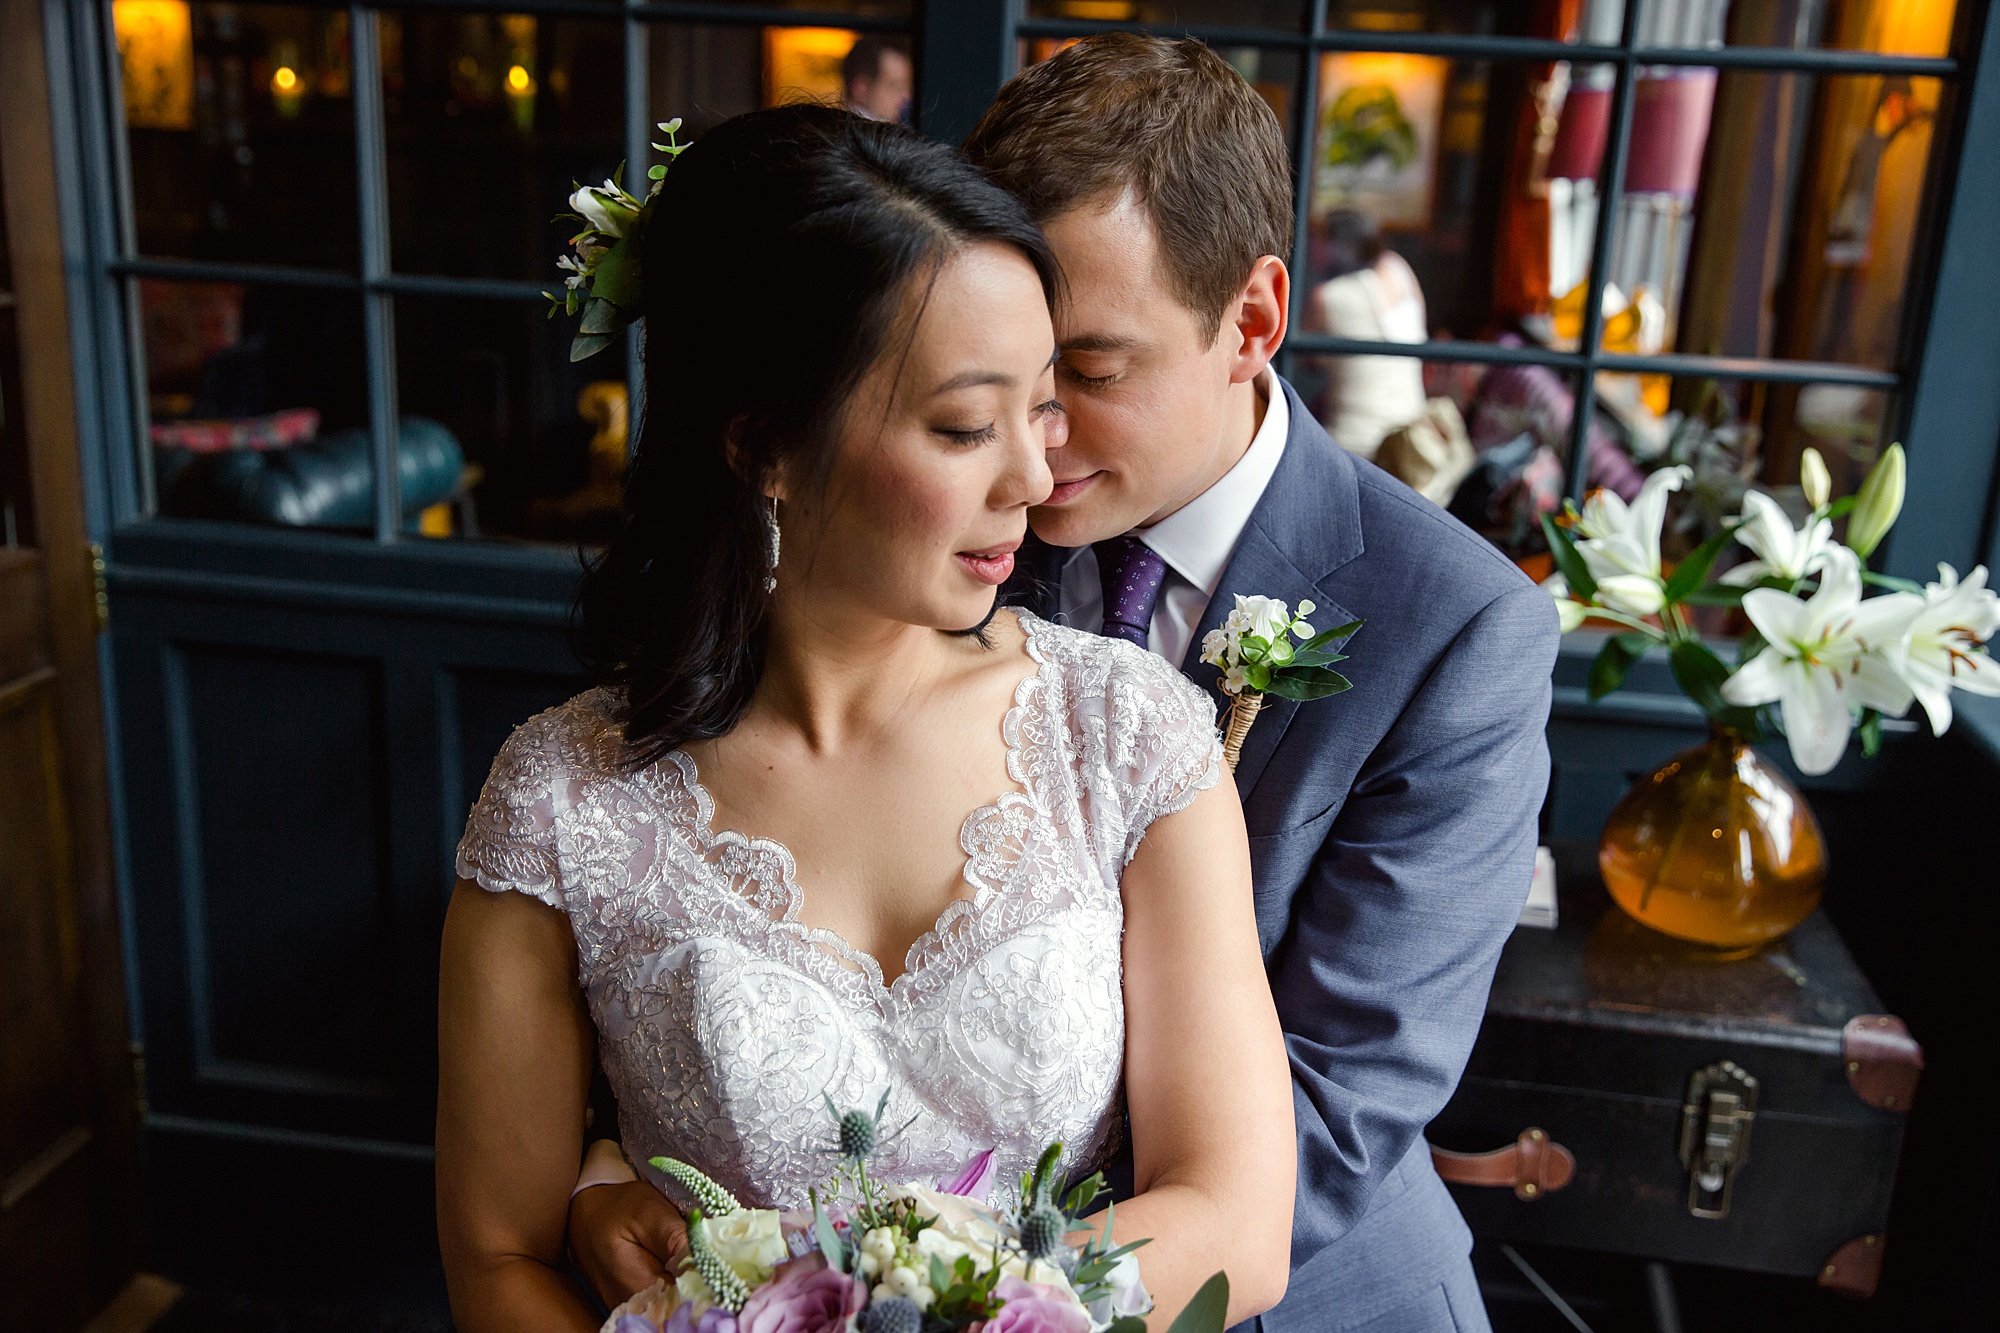 Wandsworth pub wedding groom and bride cuddle together